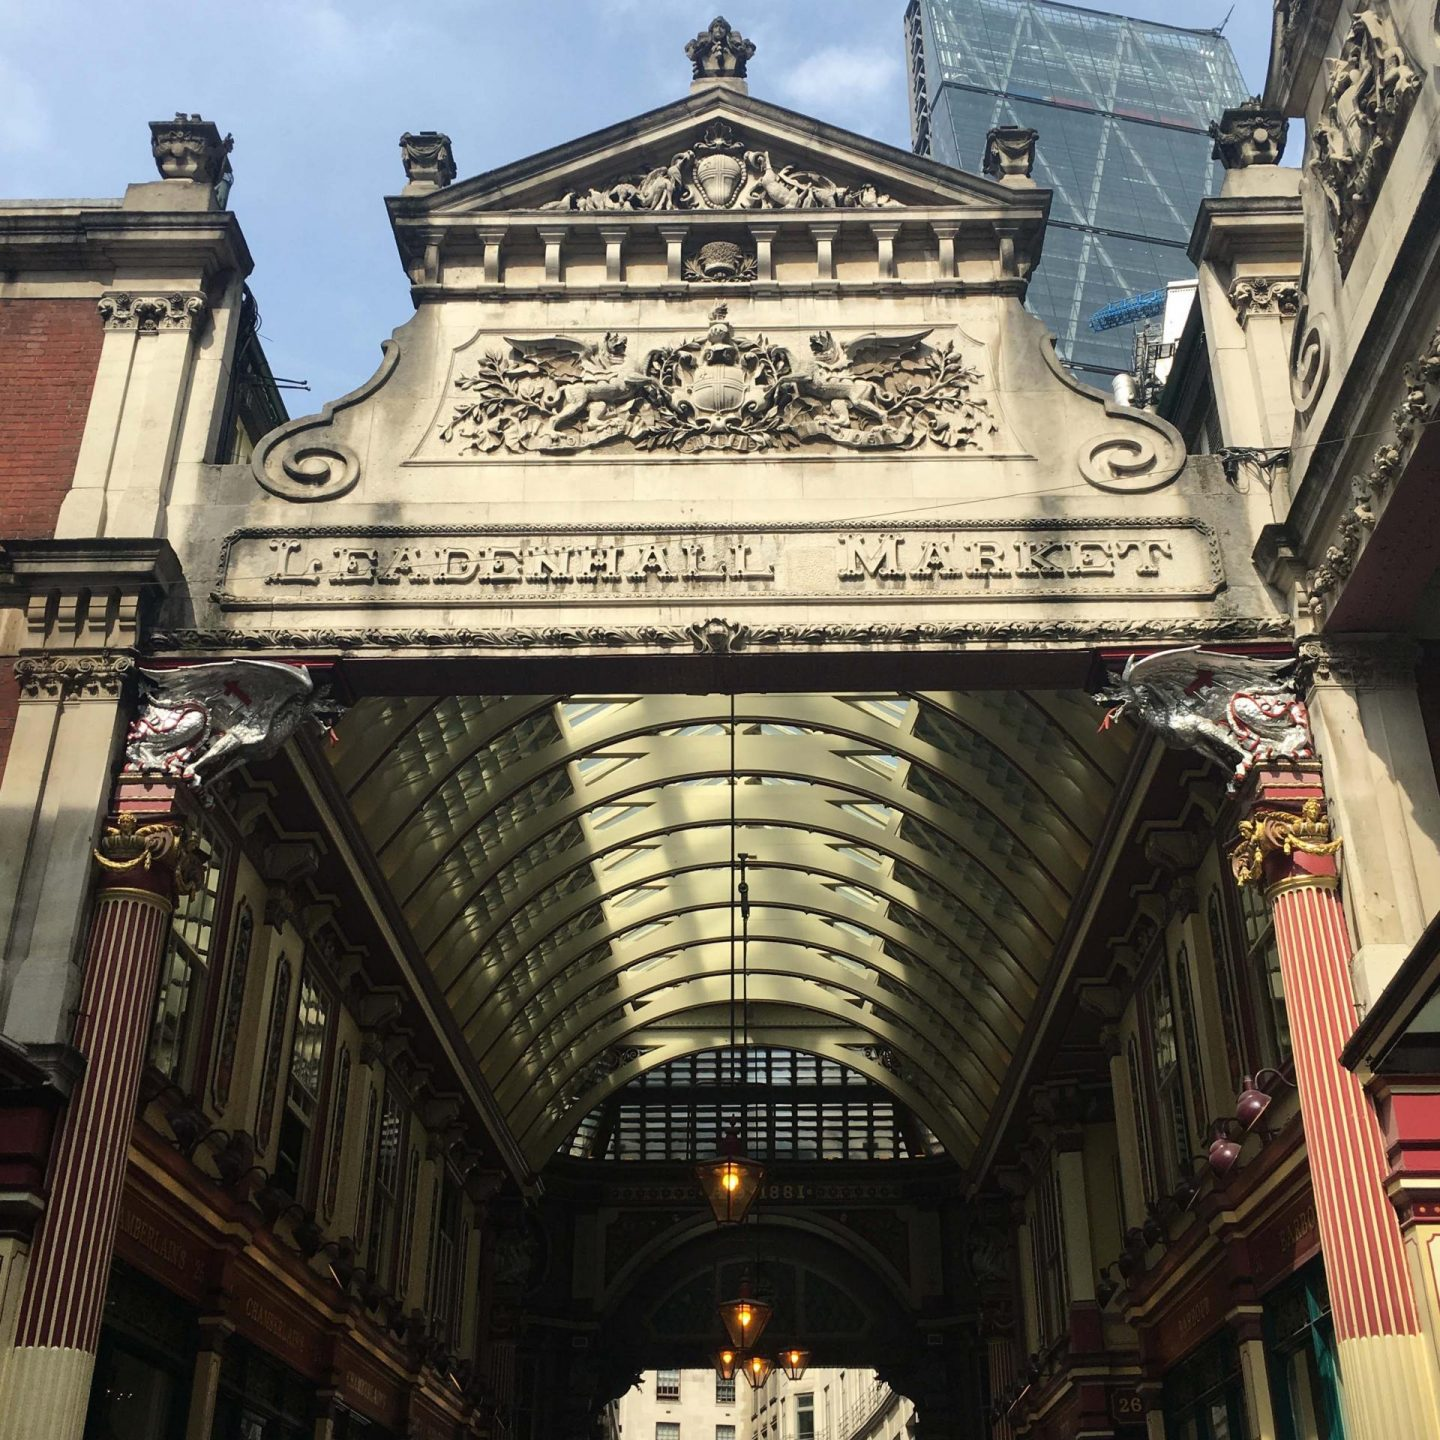 places-to-visit-in-london-if-youre-a-harry-potter-fan-rachel-nicole-uk-travel-blogger-3